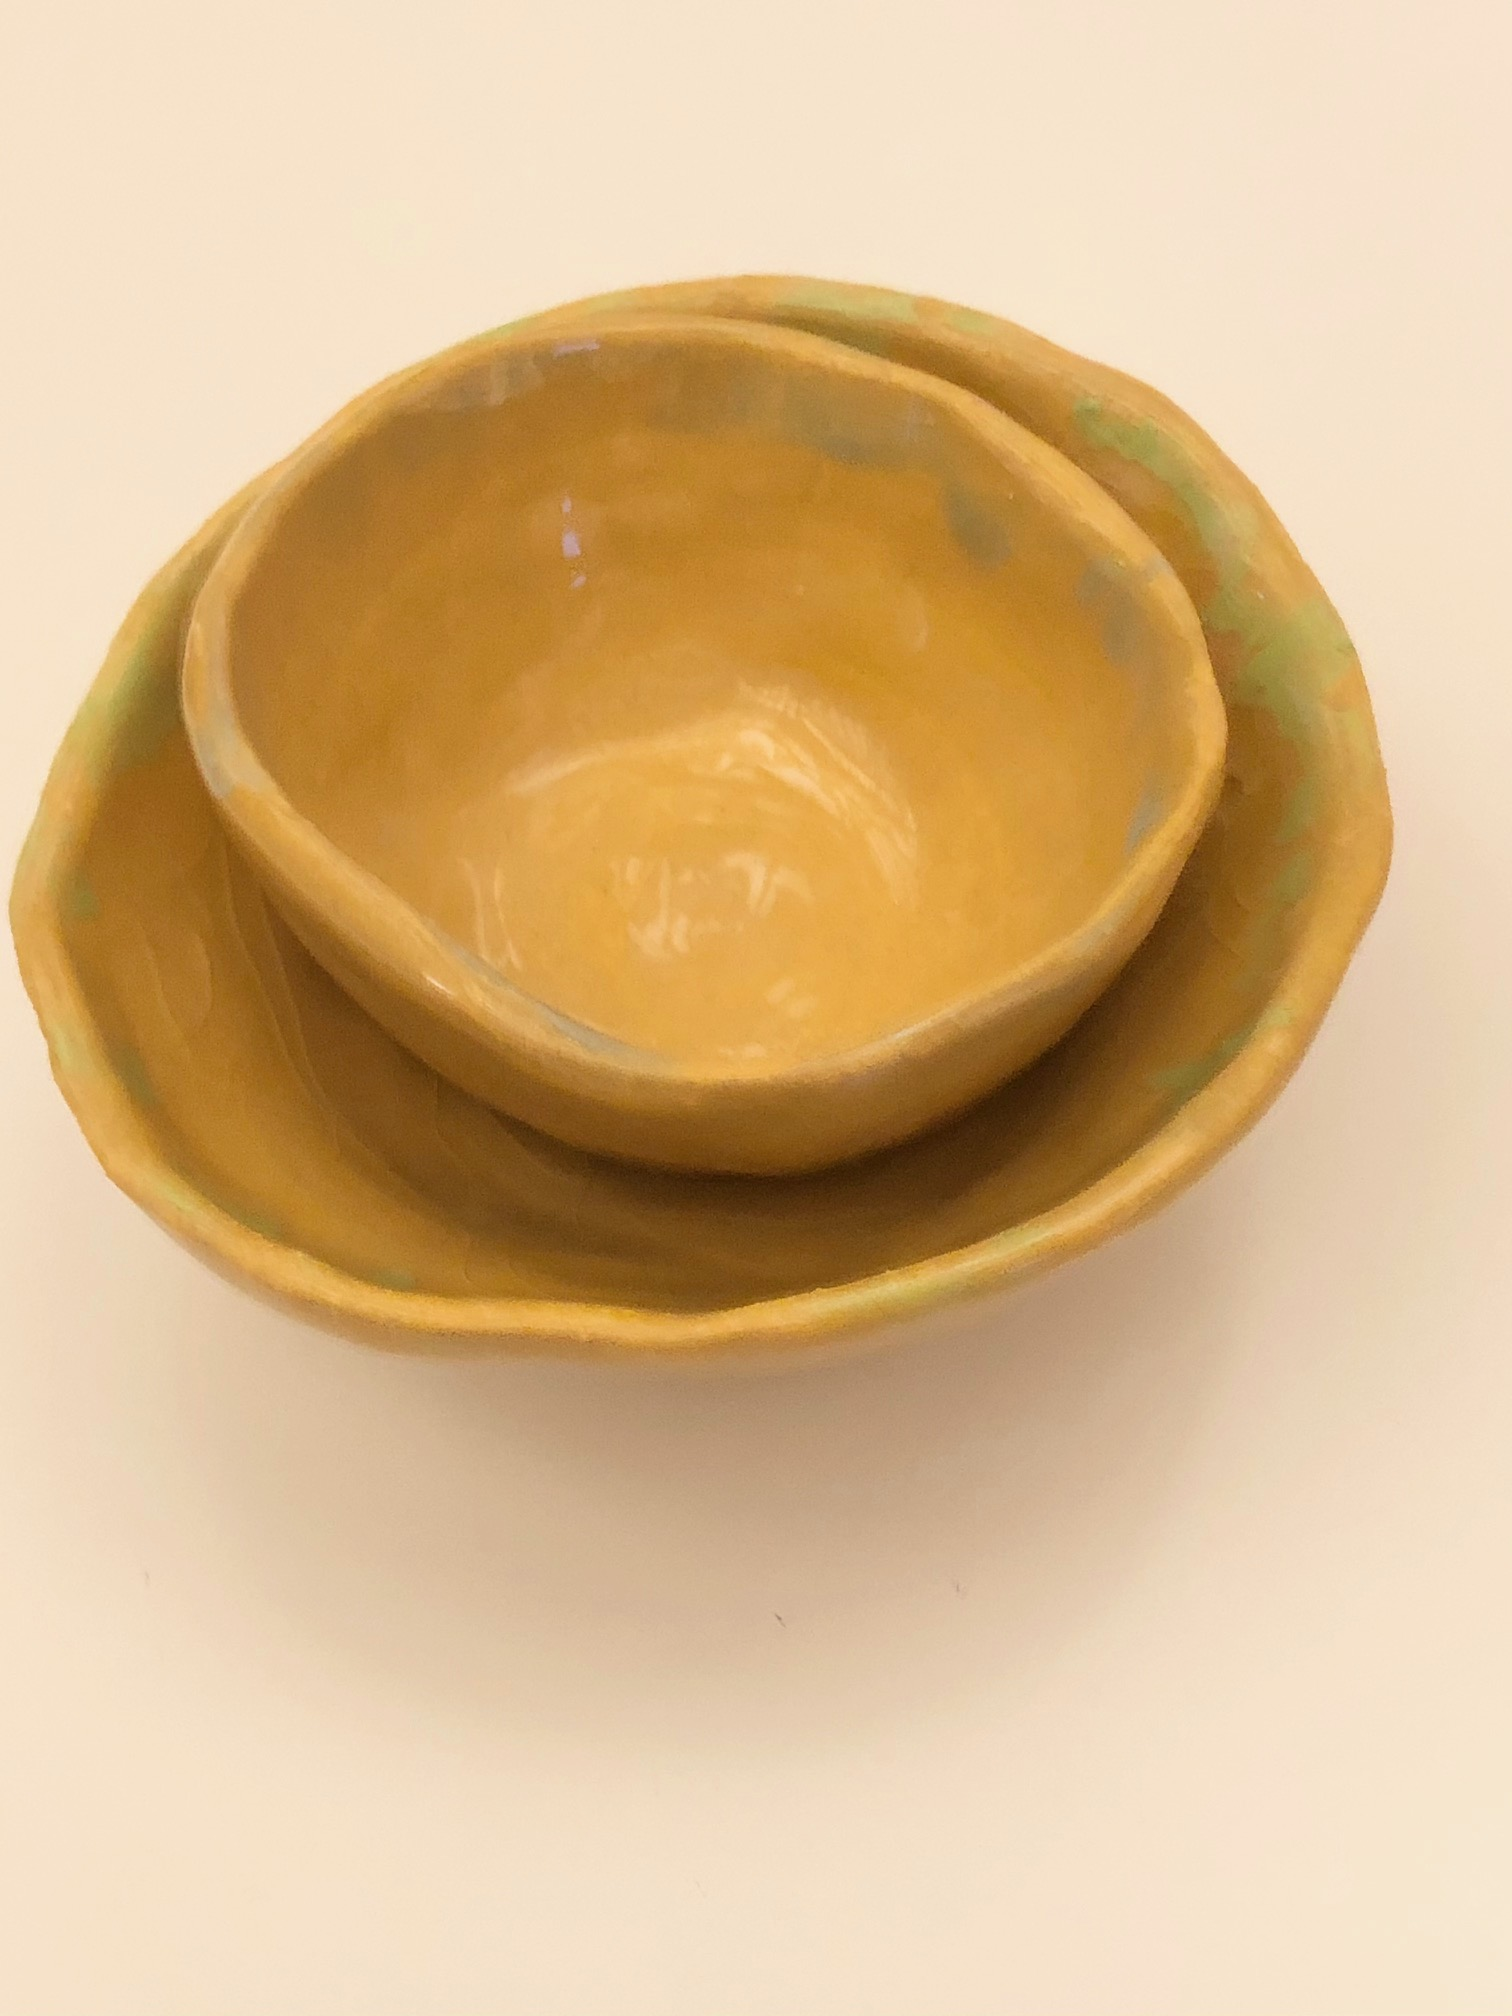 Set of Handmade Earthenware Bowls by Alex Sutherland